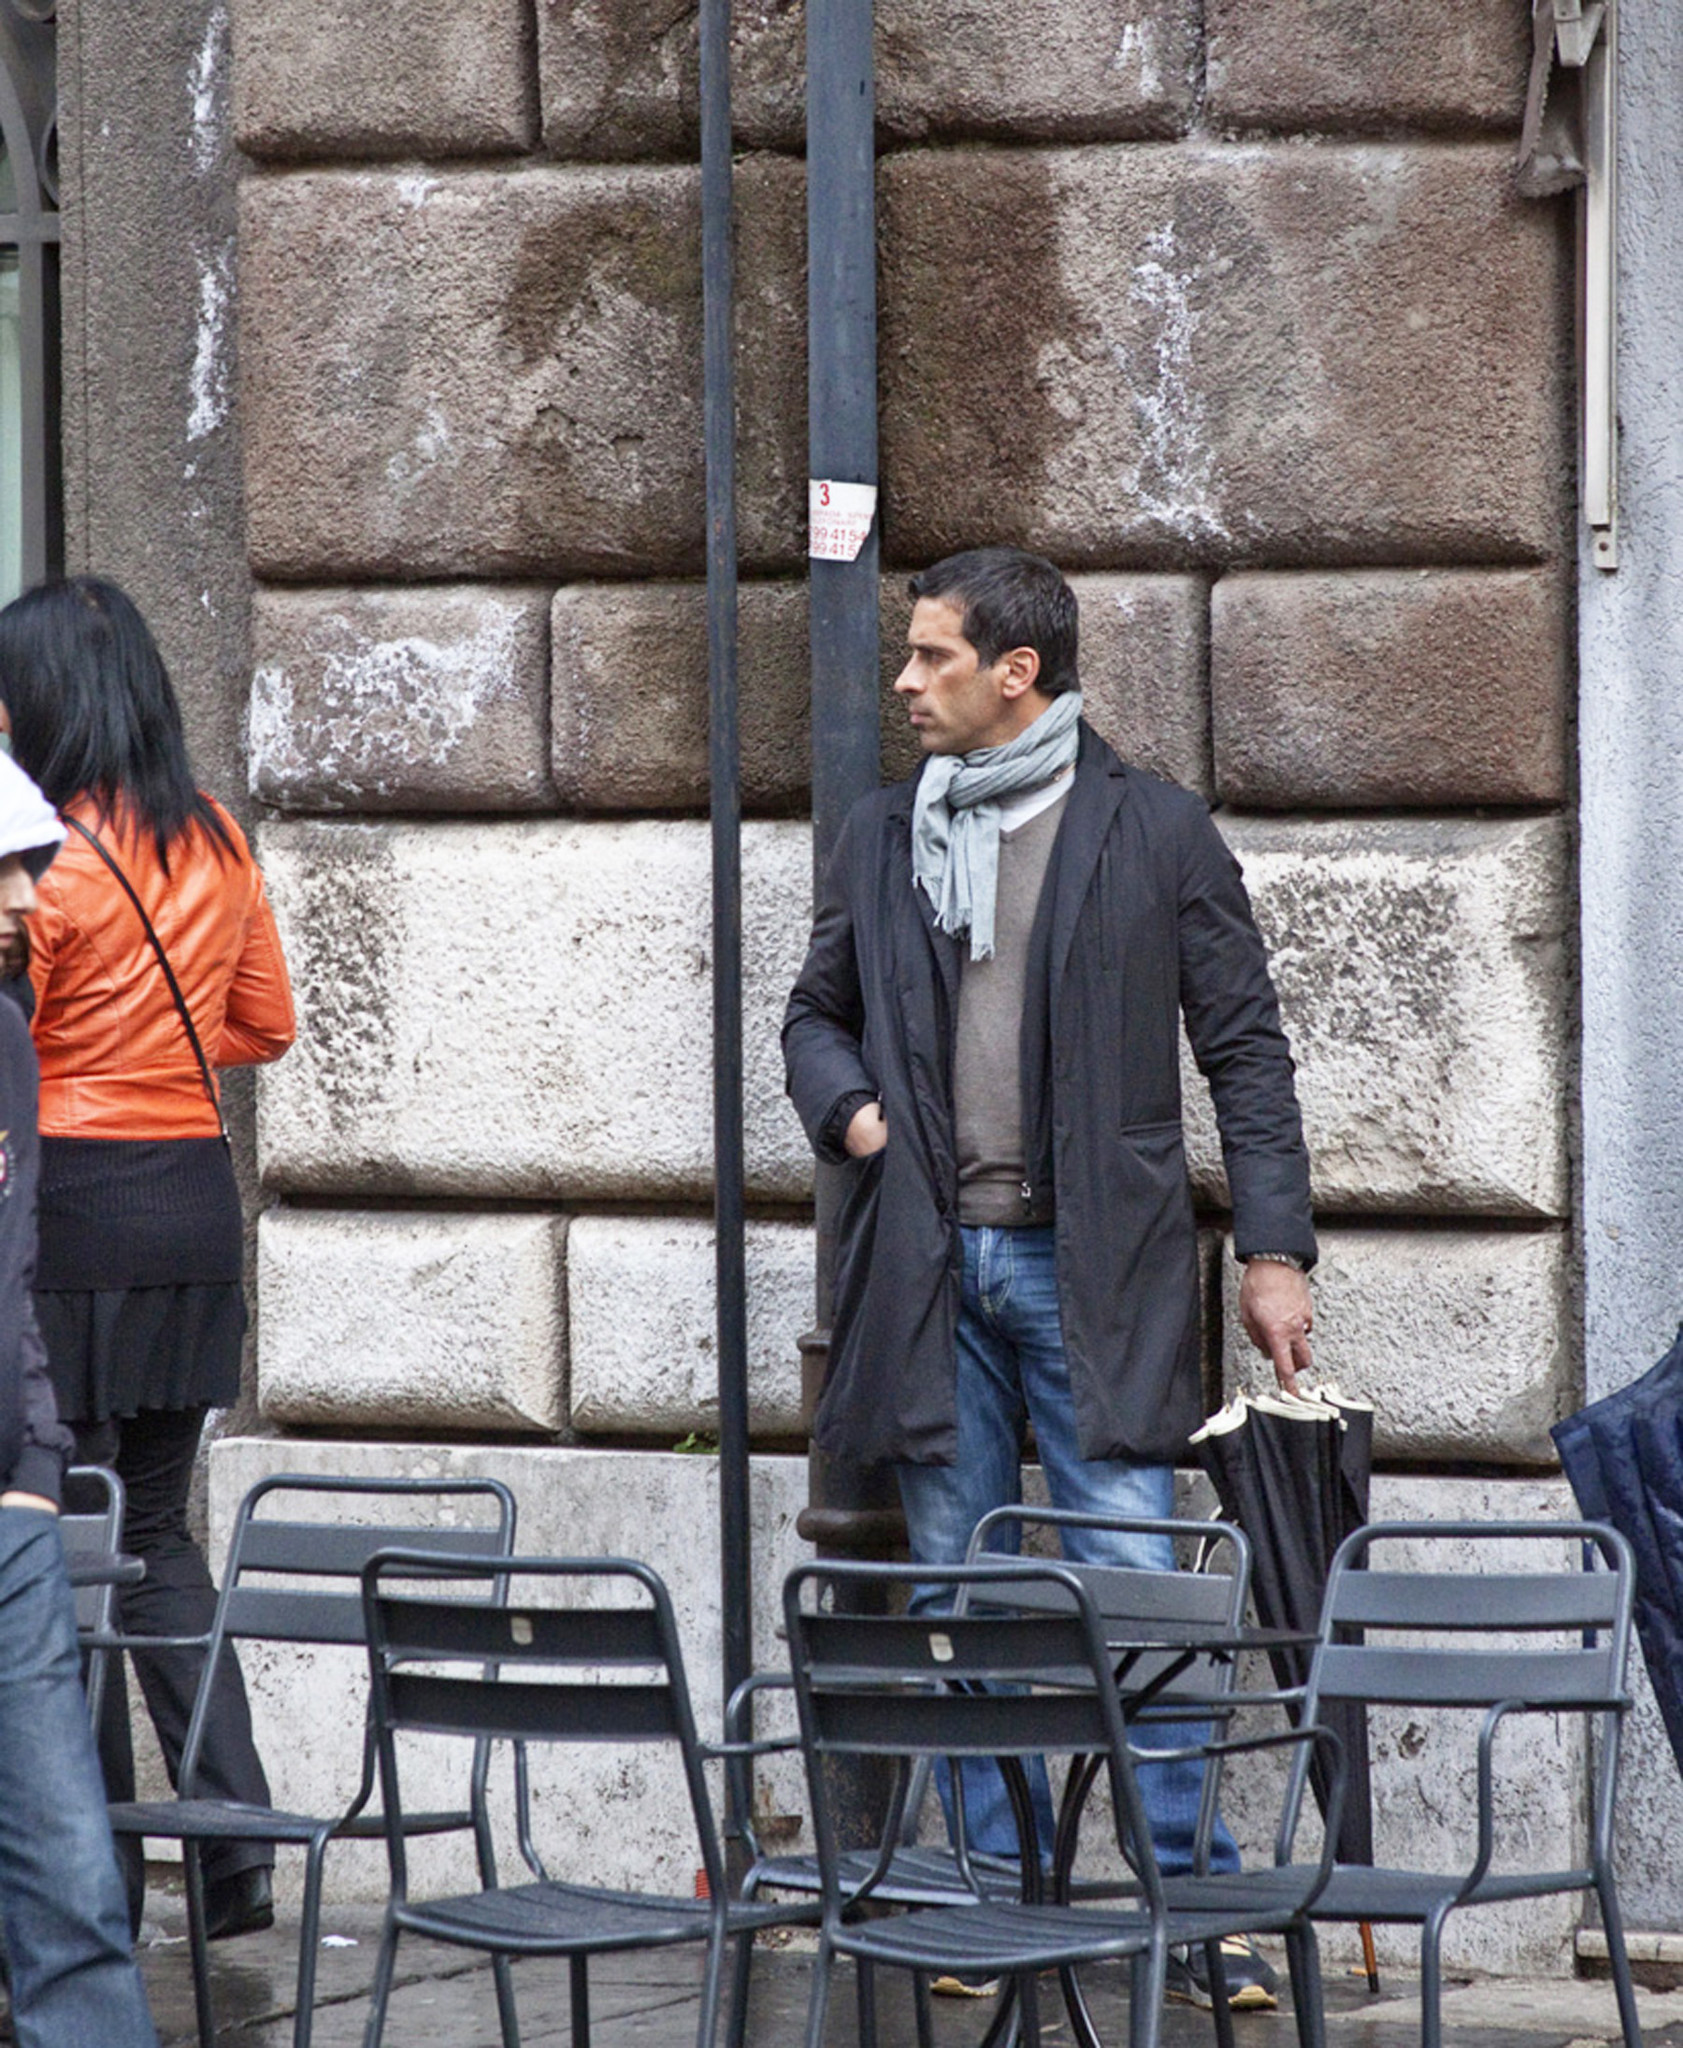 A photo taken by Dana Levine of a man in Rome.